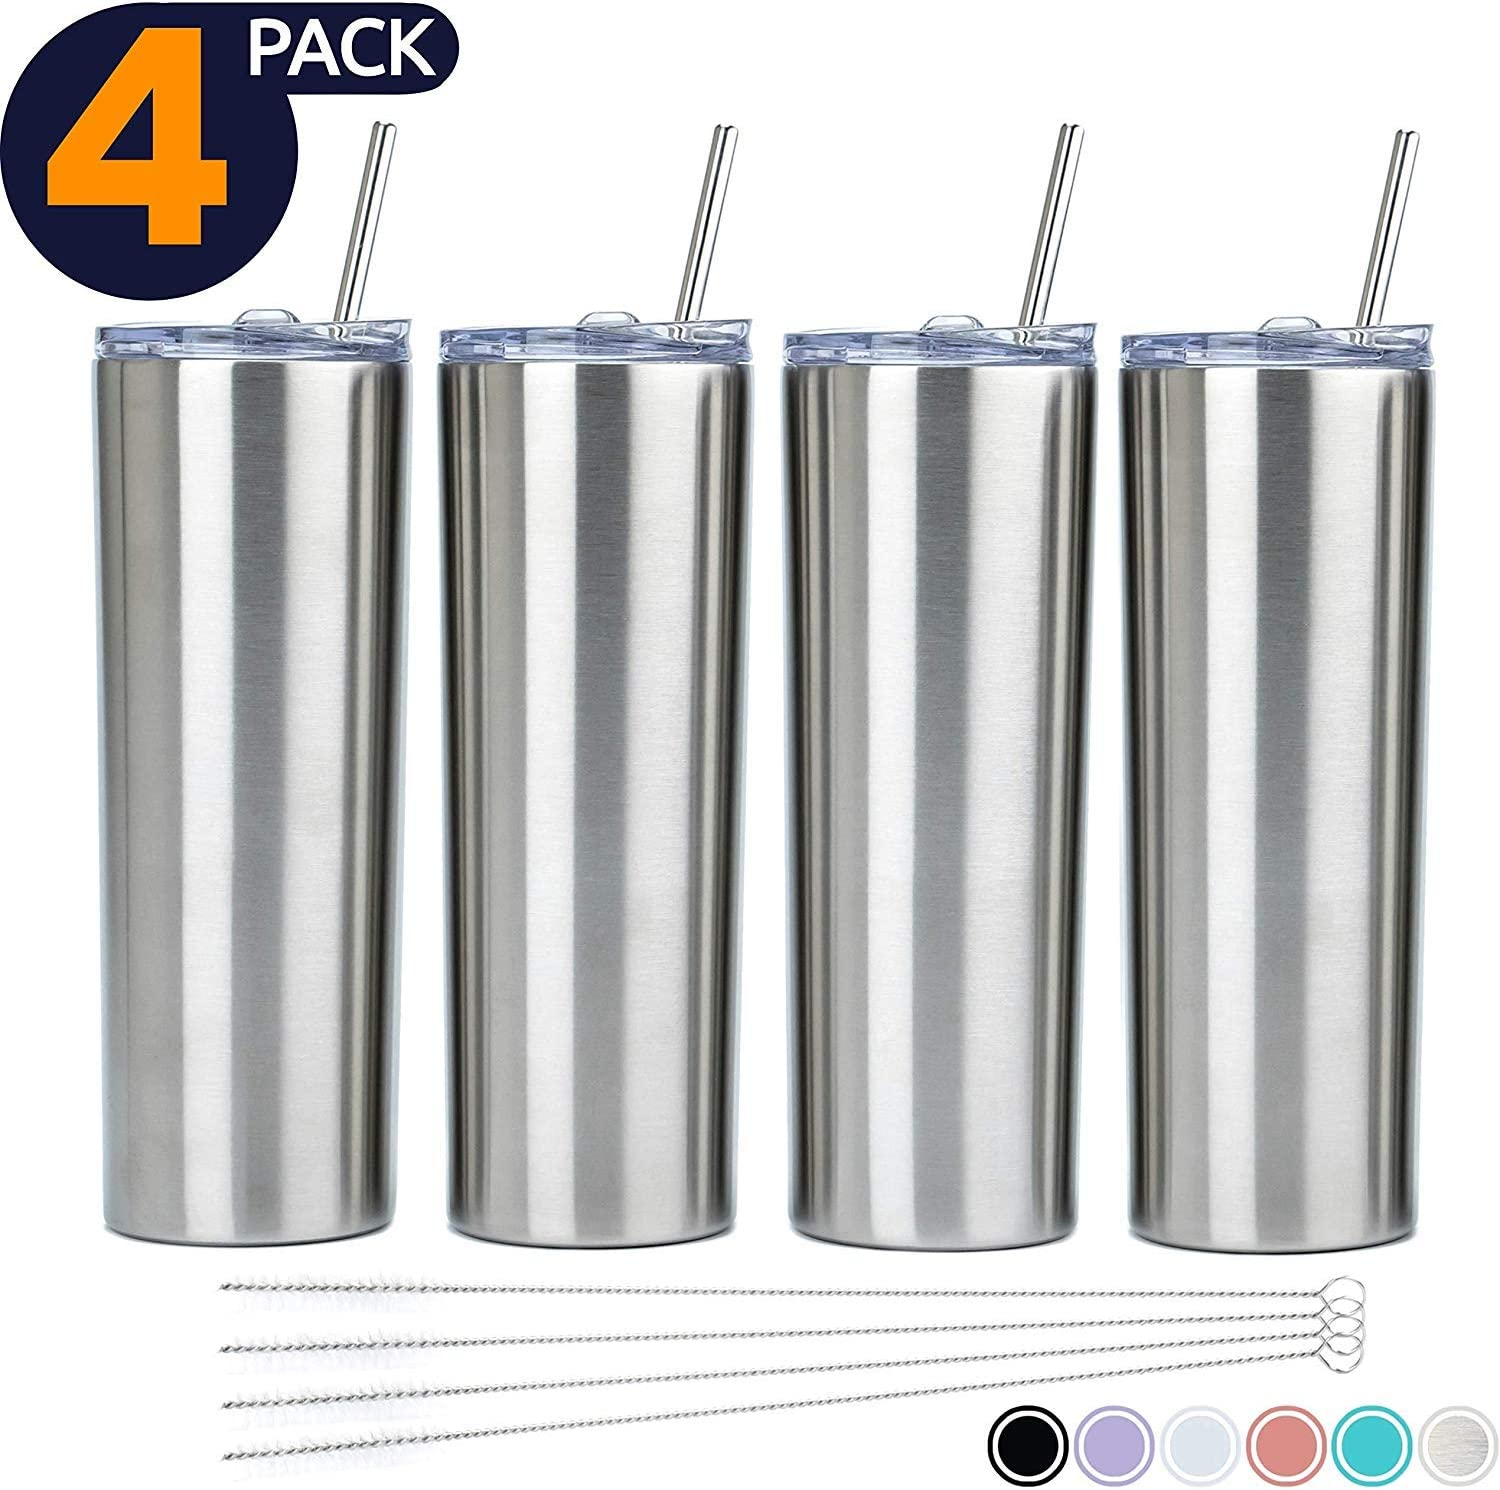 SKINNY TUMBLERS (4 pack) 20oz Stainless Steel Double Wall Insulated Tumblers with Lids and Straws   -Wall Insulated Mug Iced Coffee Cup Travel Tumbler Reusable Water Bottle for Tea, Smoothies (Silver)